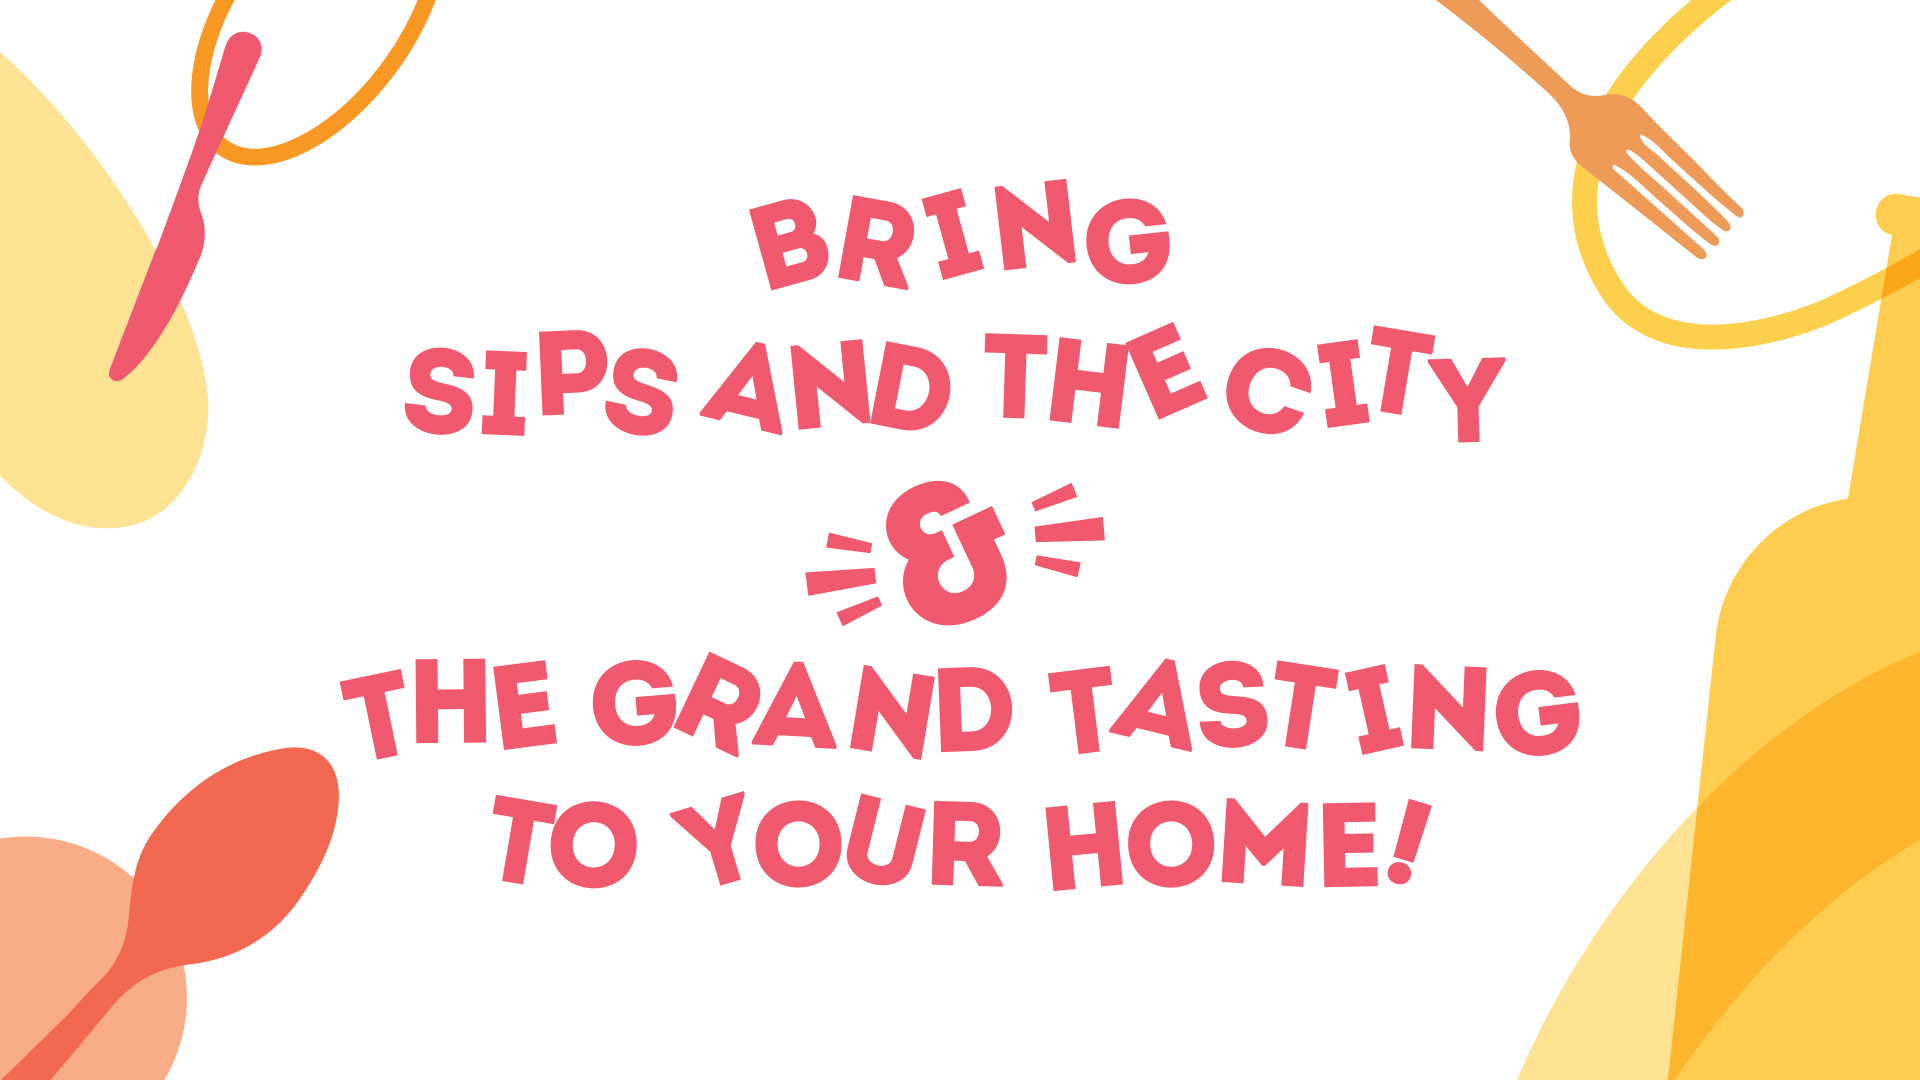 """Image 4/6: Illustrations in a pink, orange, and yellow color scheme with the words """"Bring sips and the city & The grand tasting tour to your home!"""""""